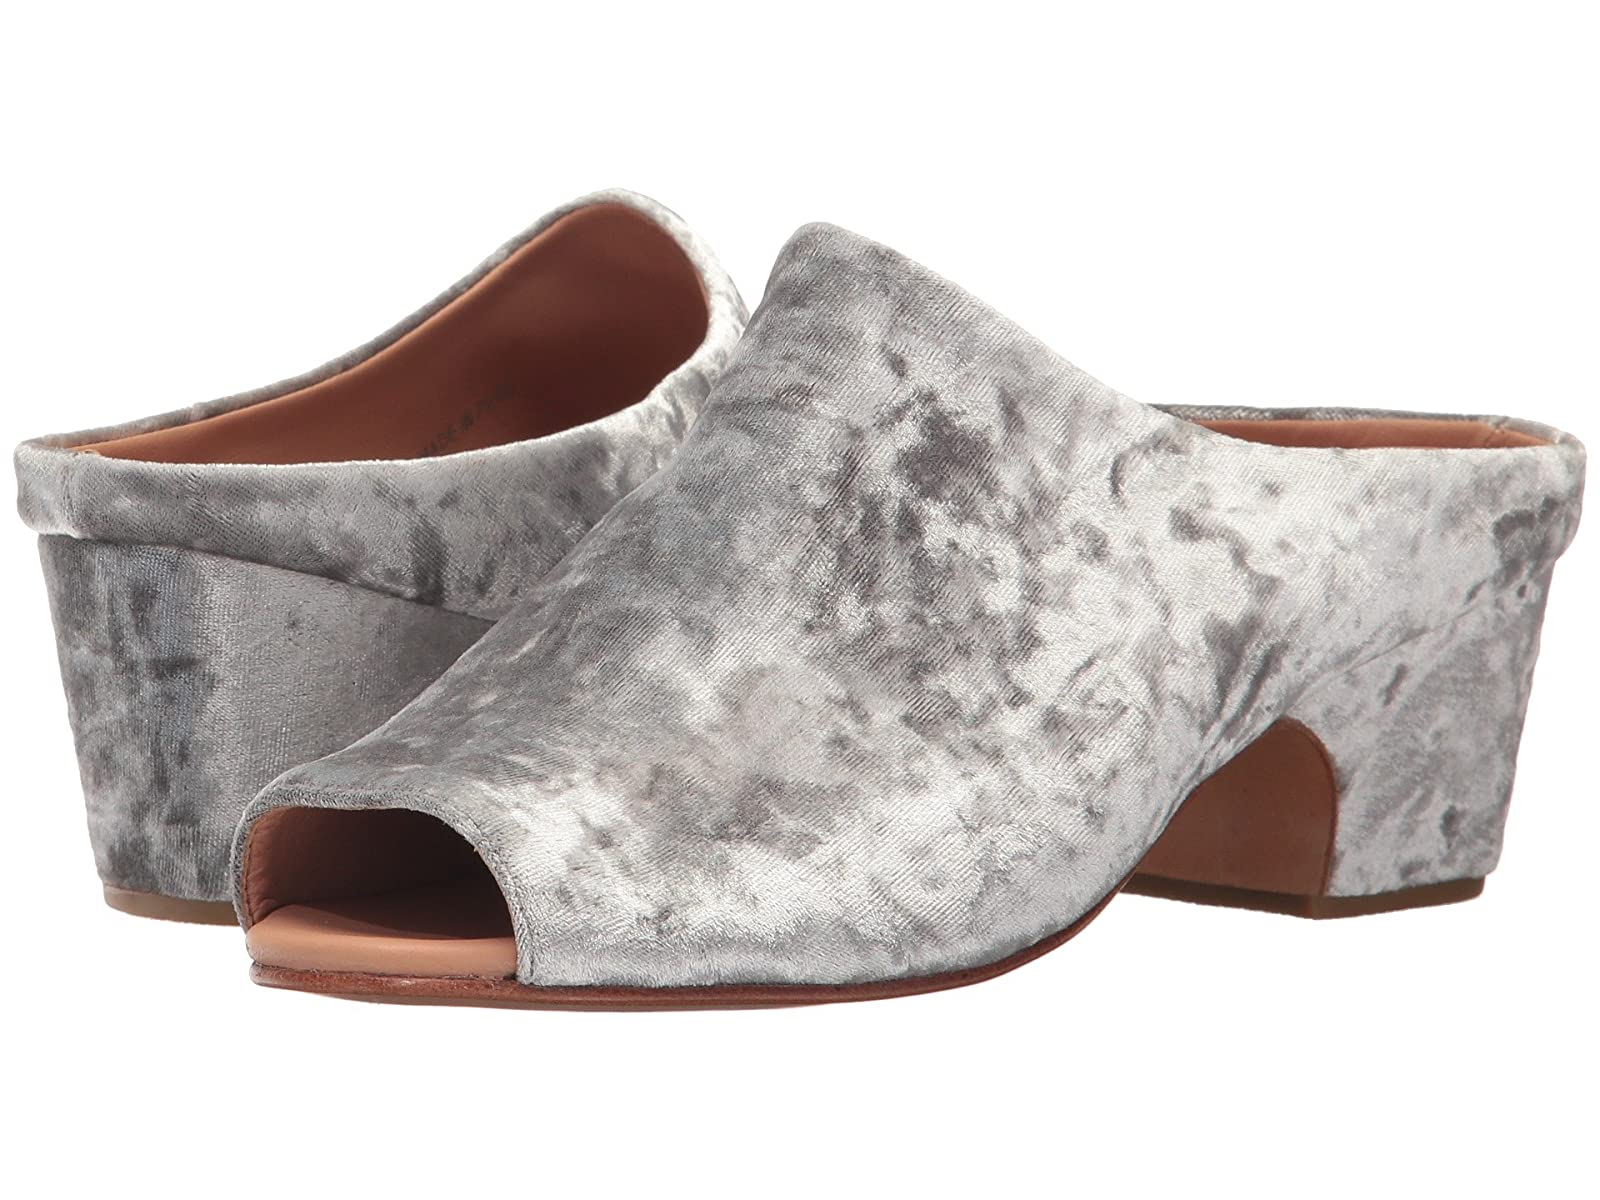 Rachel Comey FosterAtmospheric grades have affordable shoes